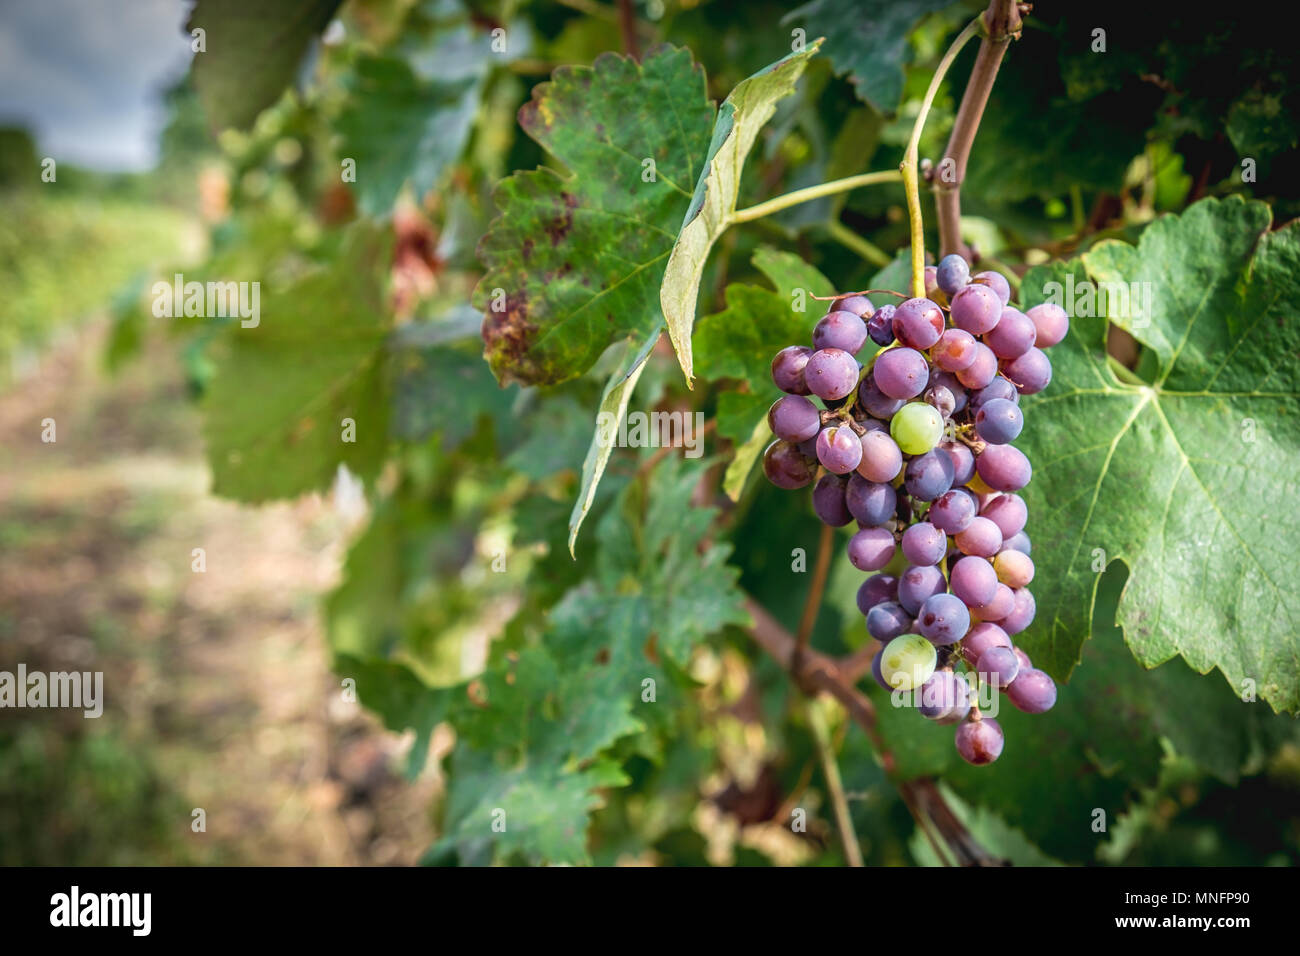 Grapes hanging in vineyard in autumn harvest season - Stock Image